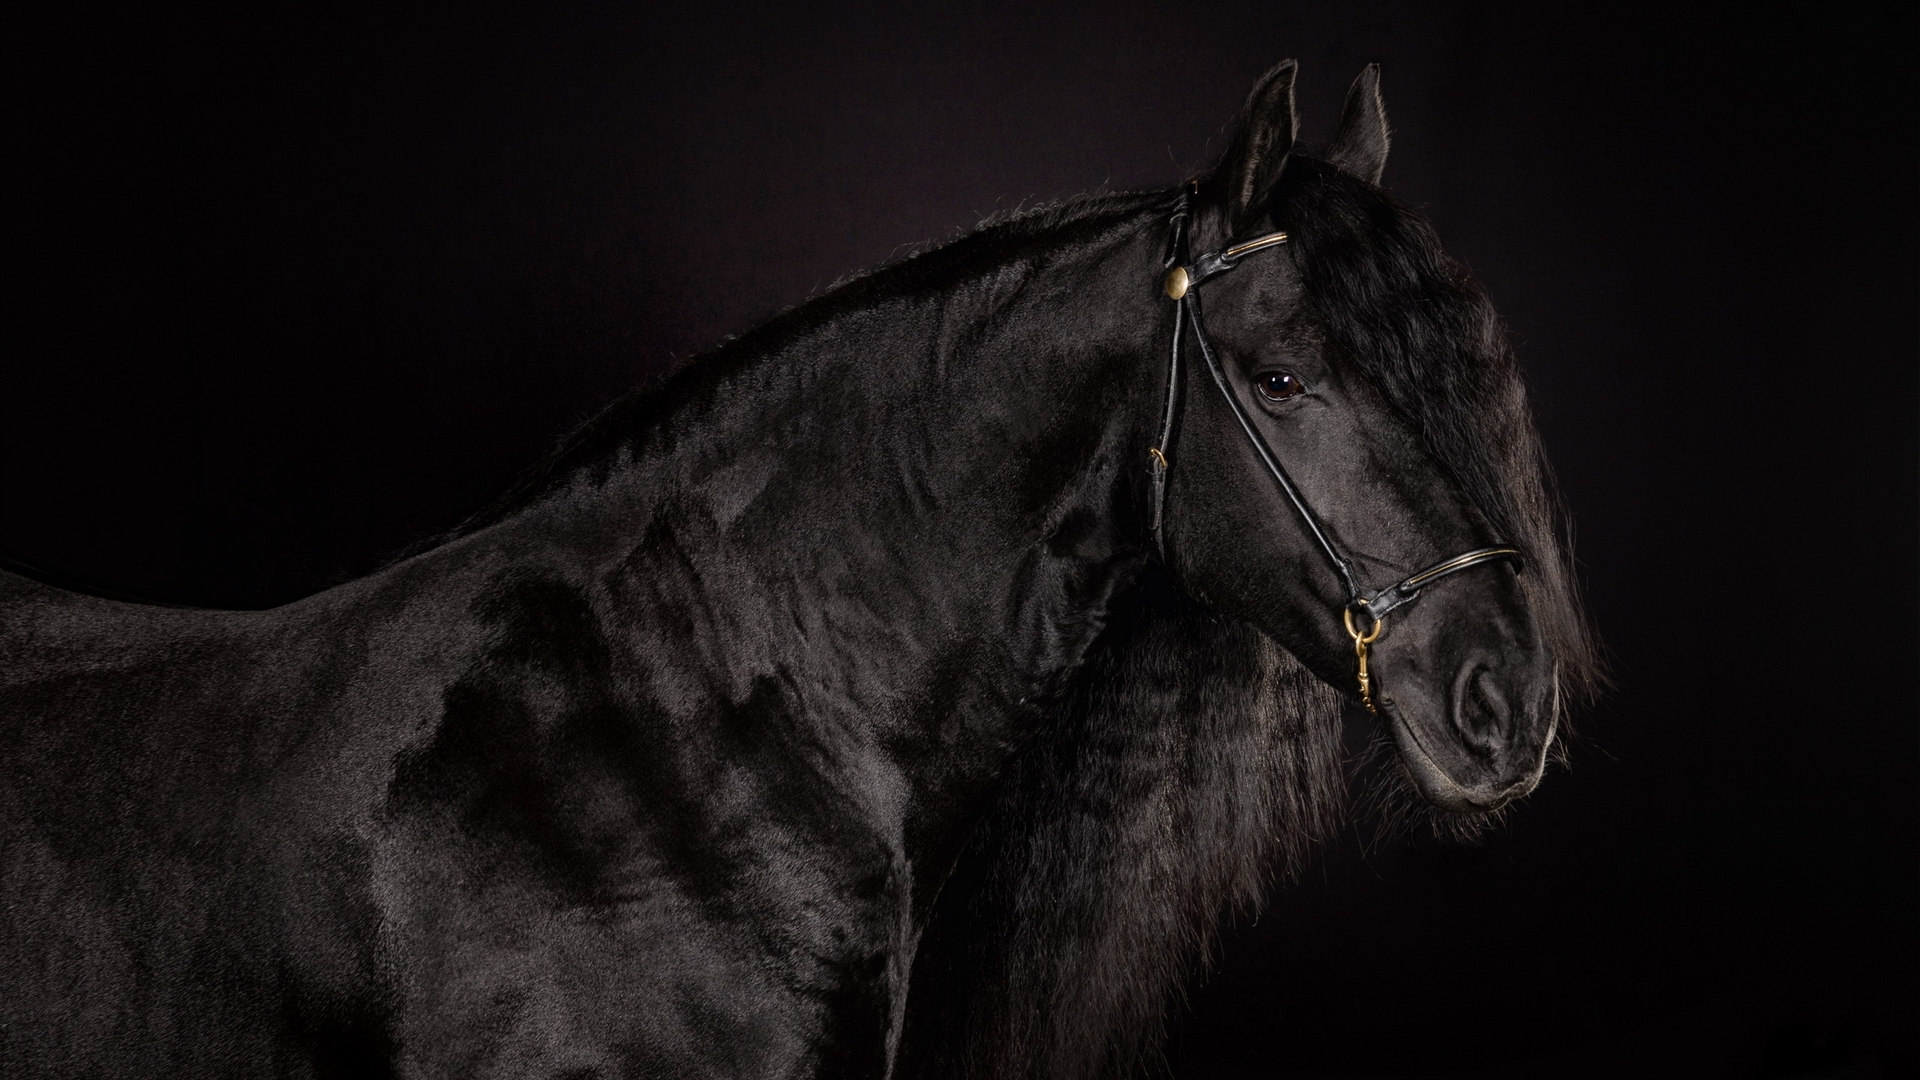 Download Free Black Horse Backgrounds Download Free Black Horse Hd Wallpaper Download 1920x1080 Download Hd Wallpaper Wallpapertip